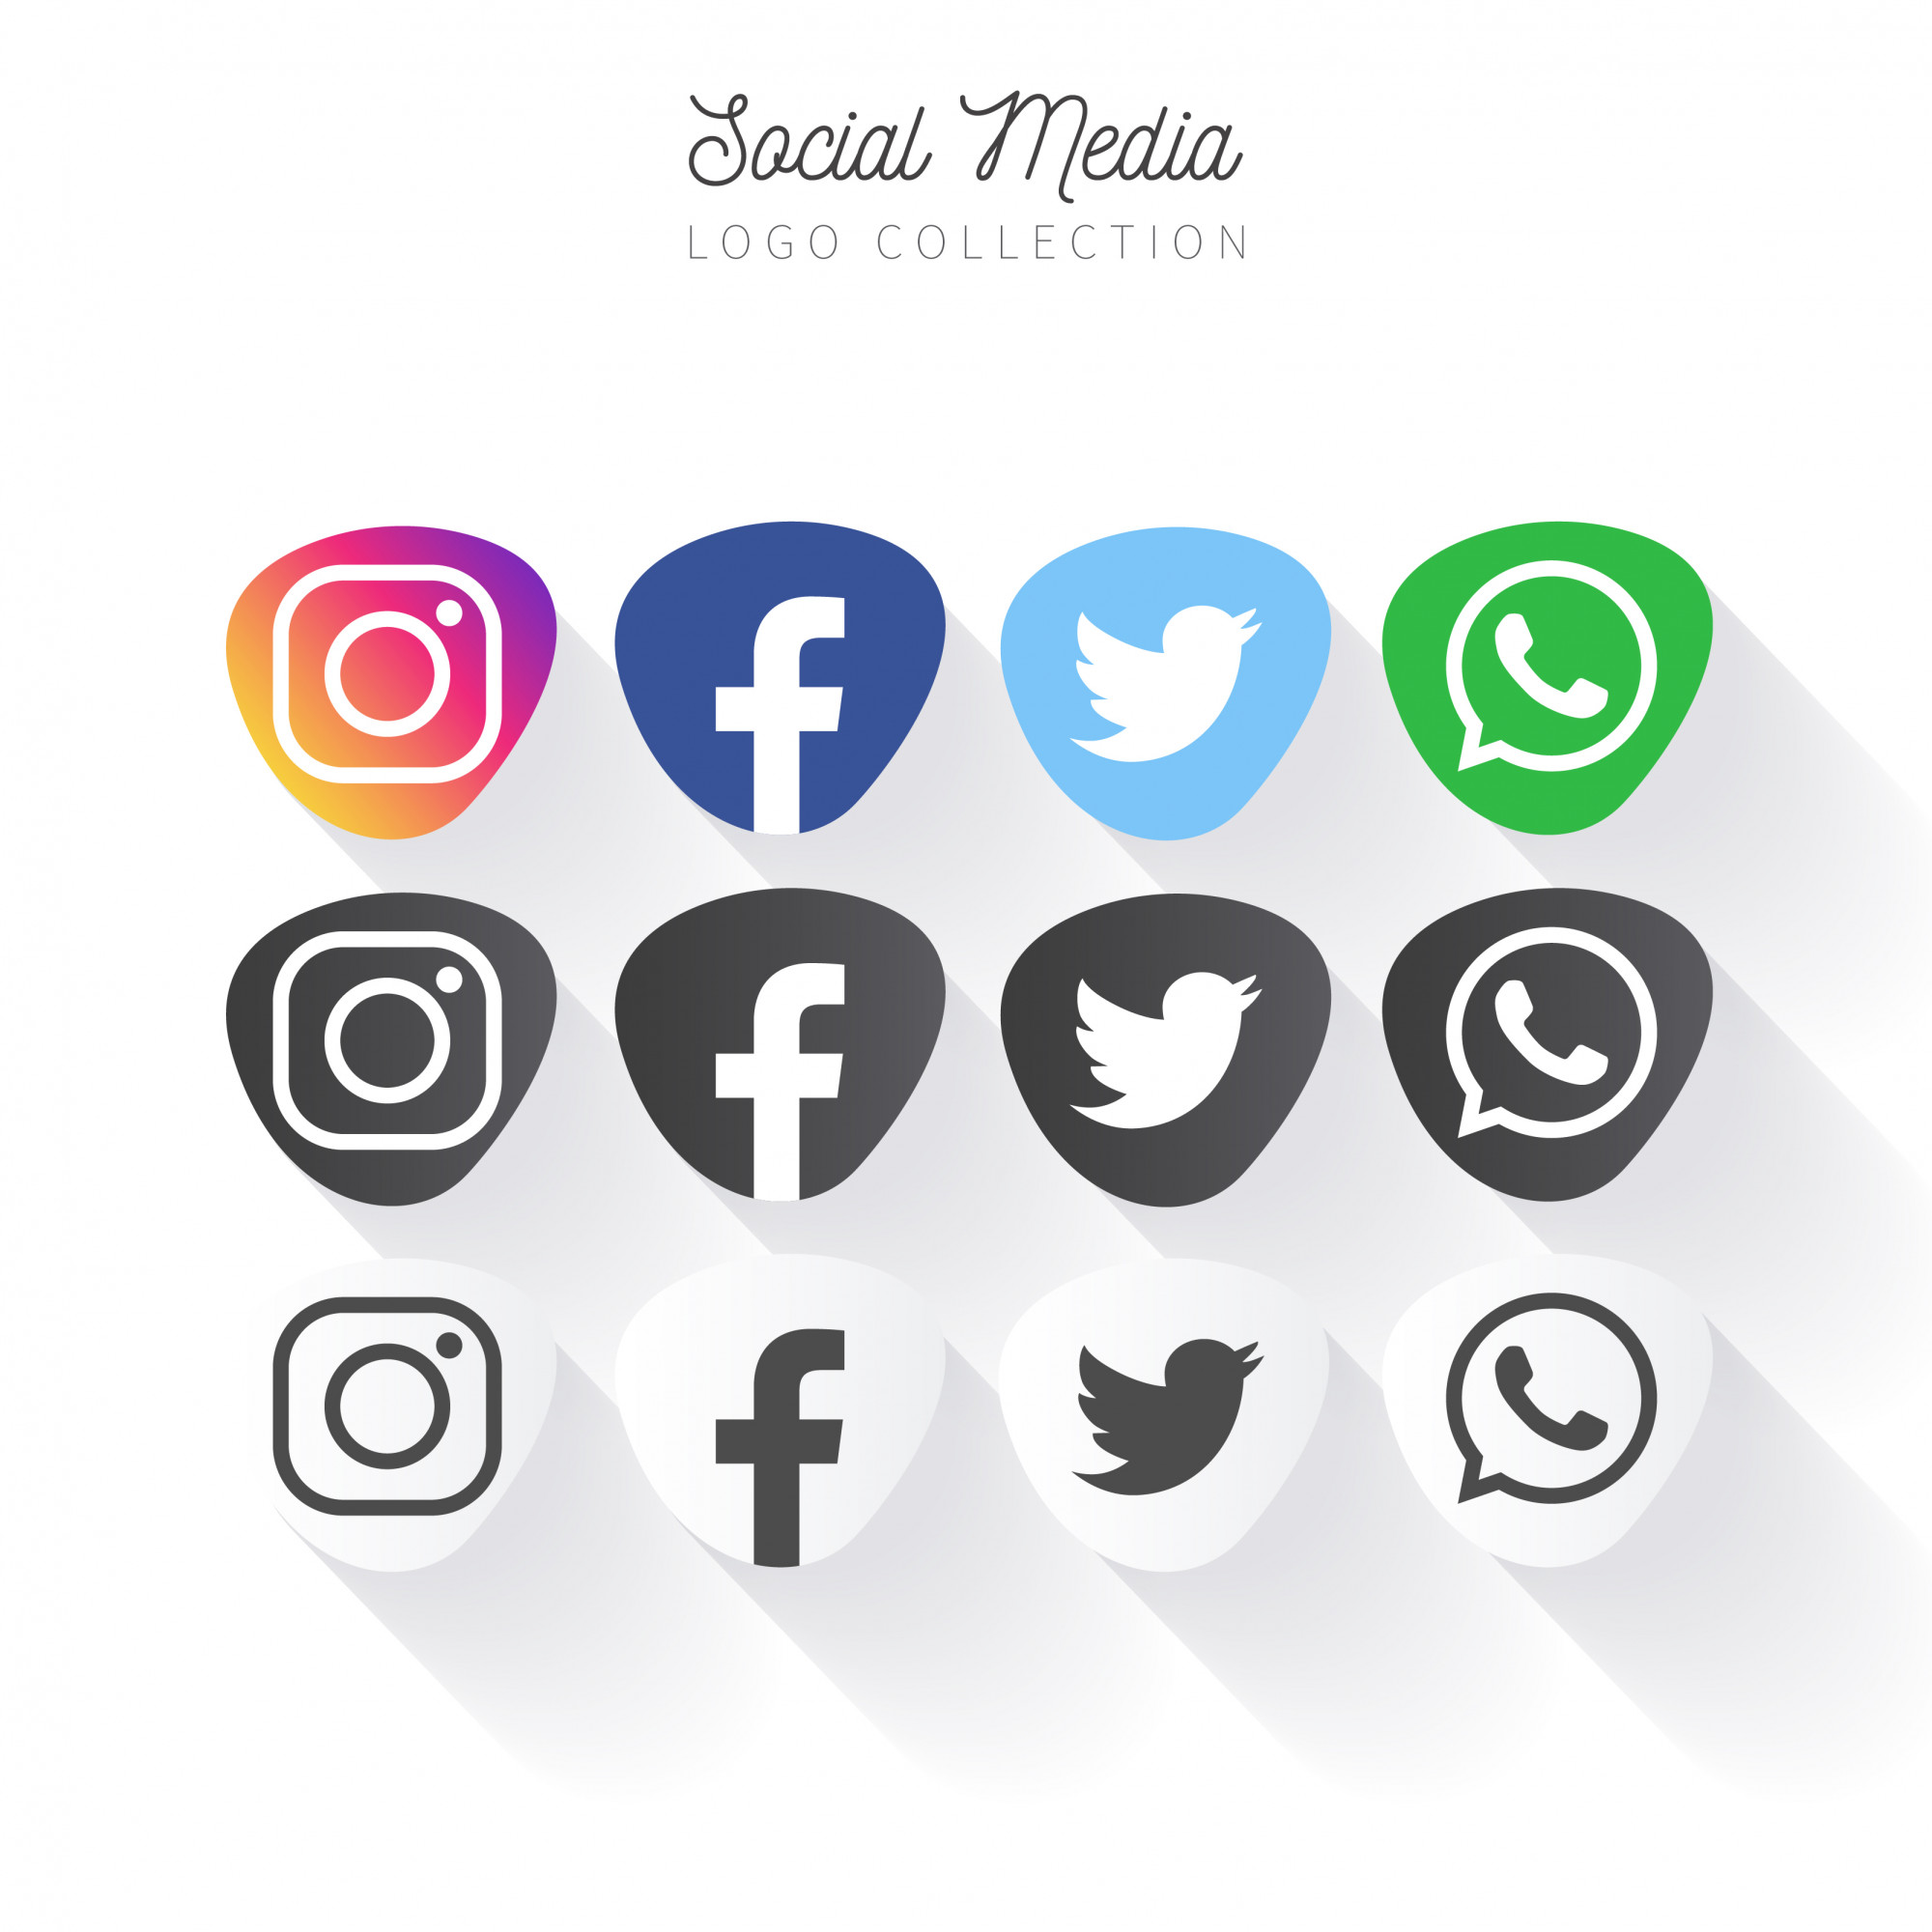 Popular Social Media banner collection